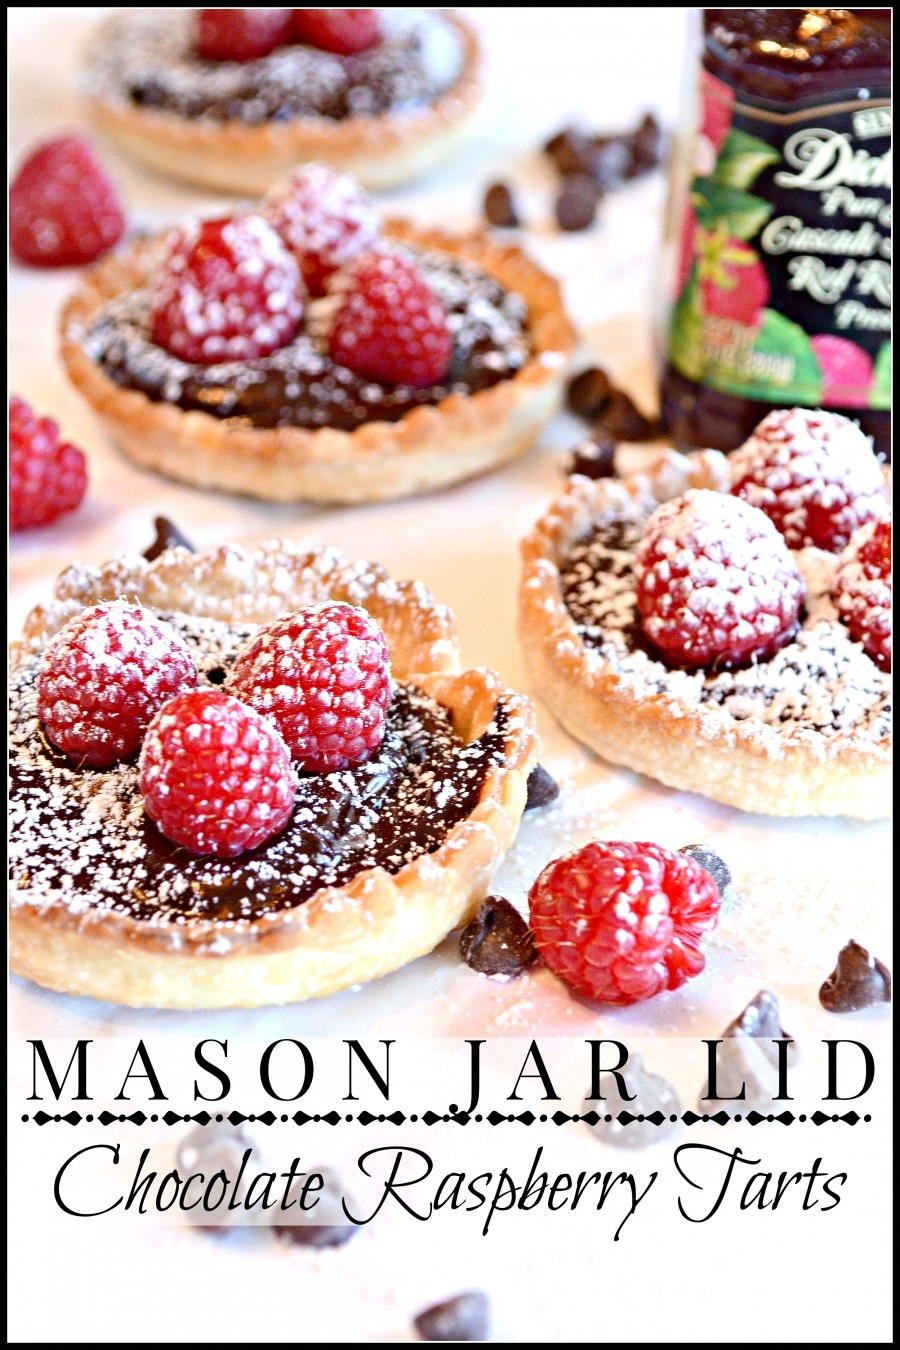 MASON JAR LID CHOCOLATE RASPBERRY TARTS